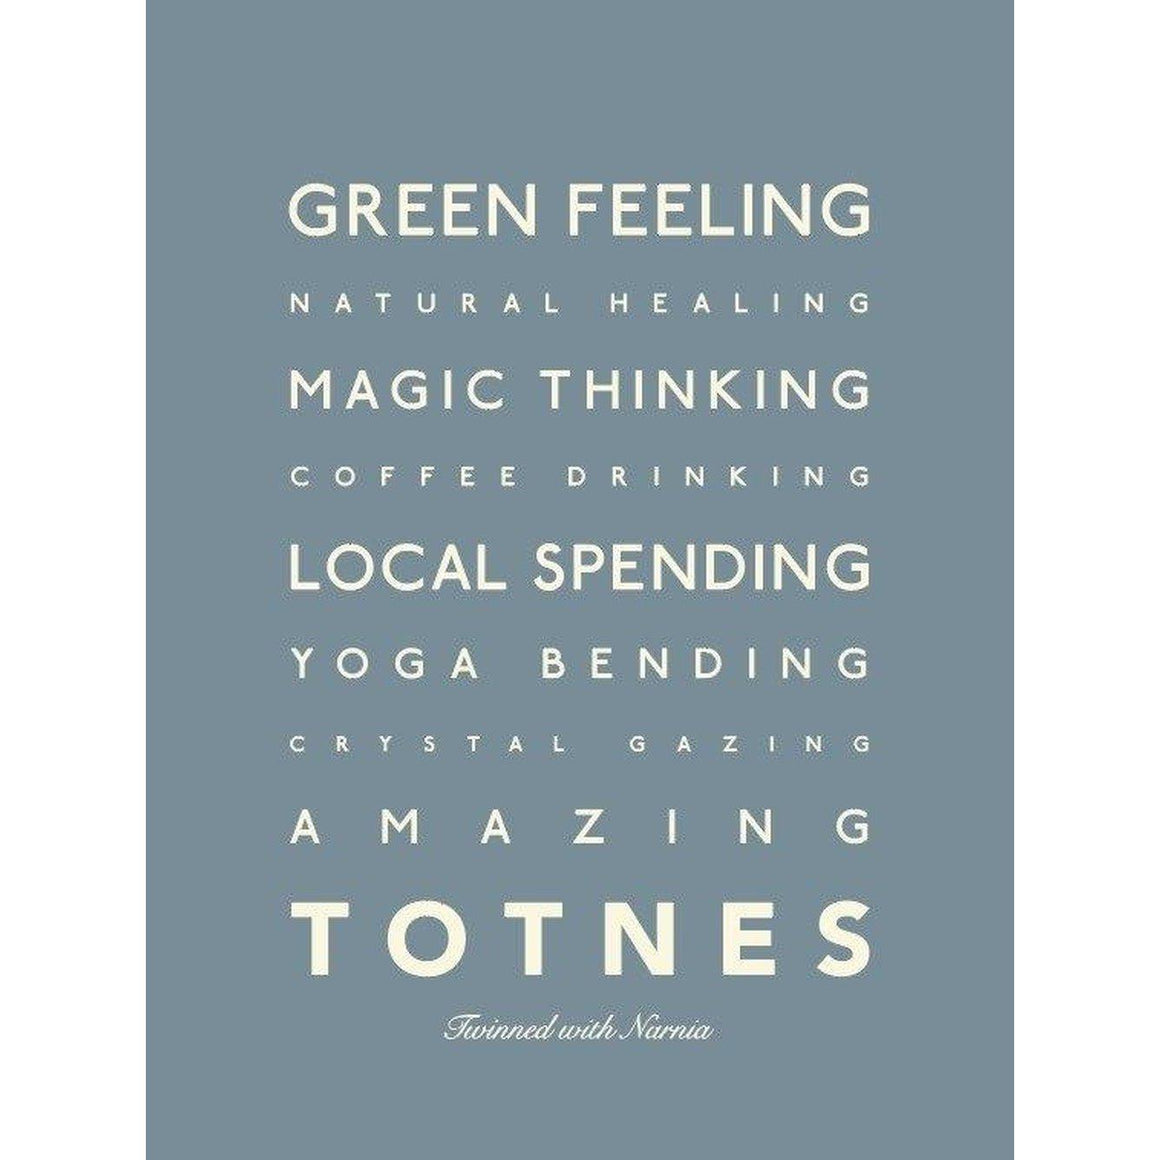 Totnes Typographic Travel and Seaside Print by SeaKisses